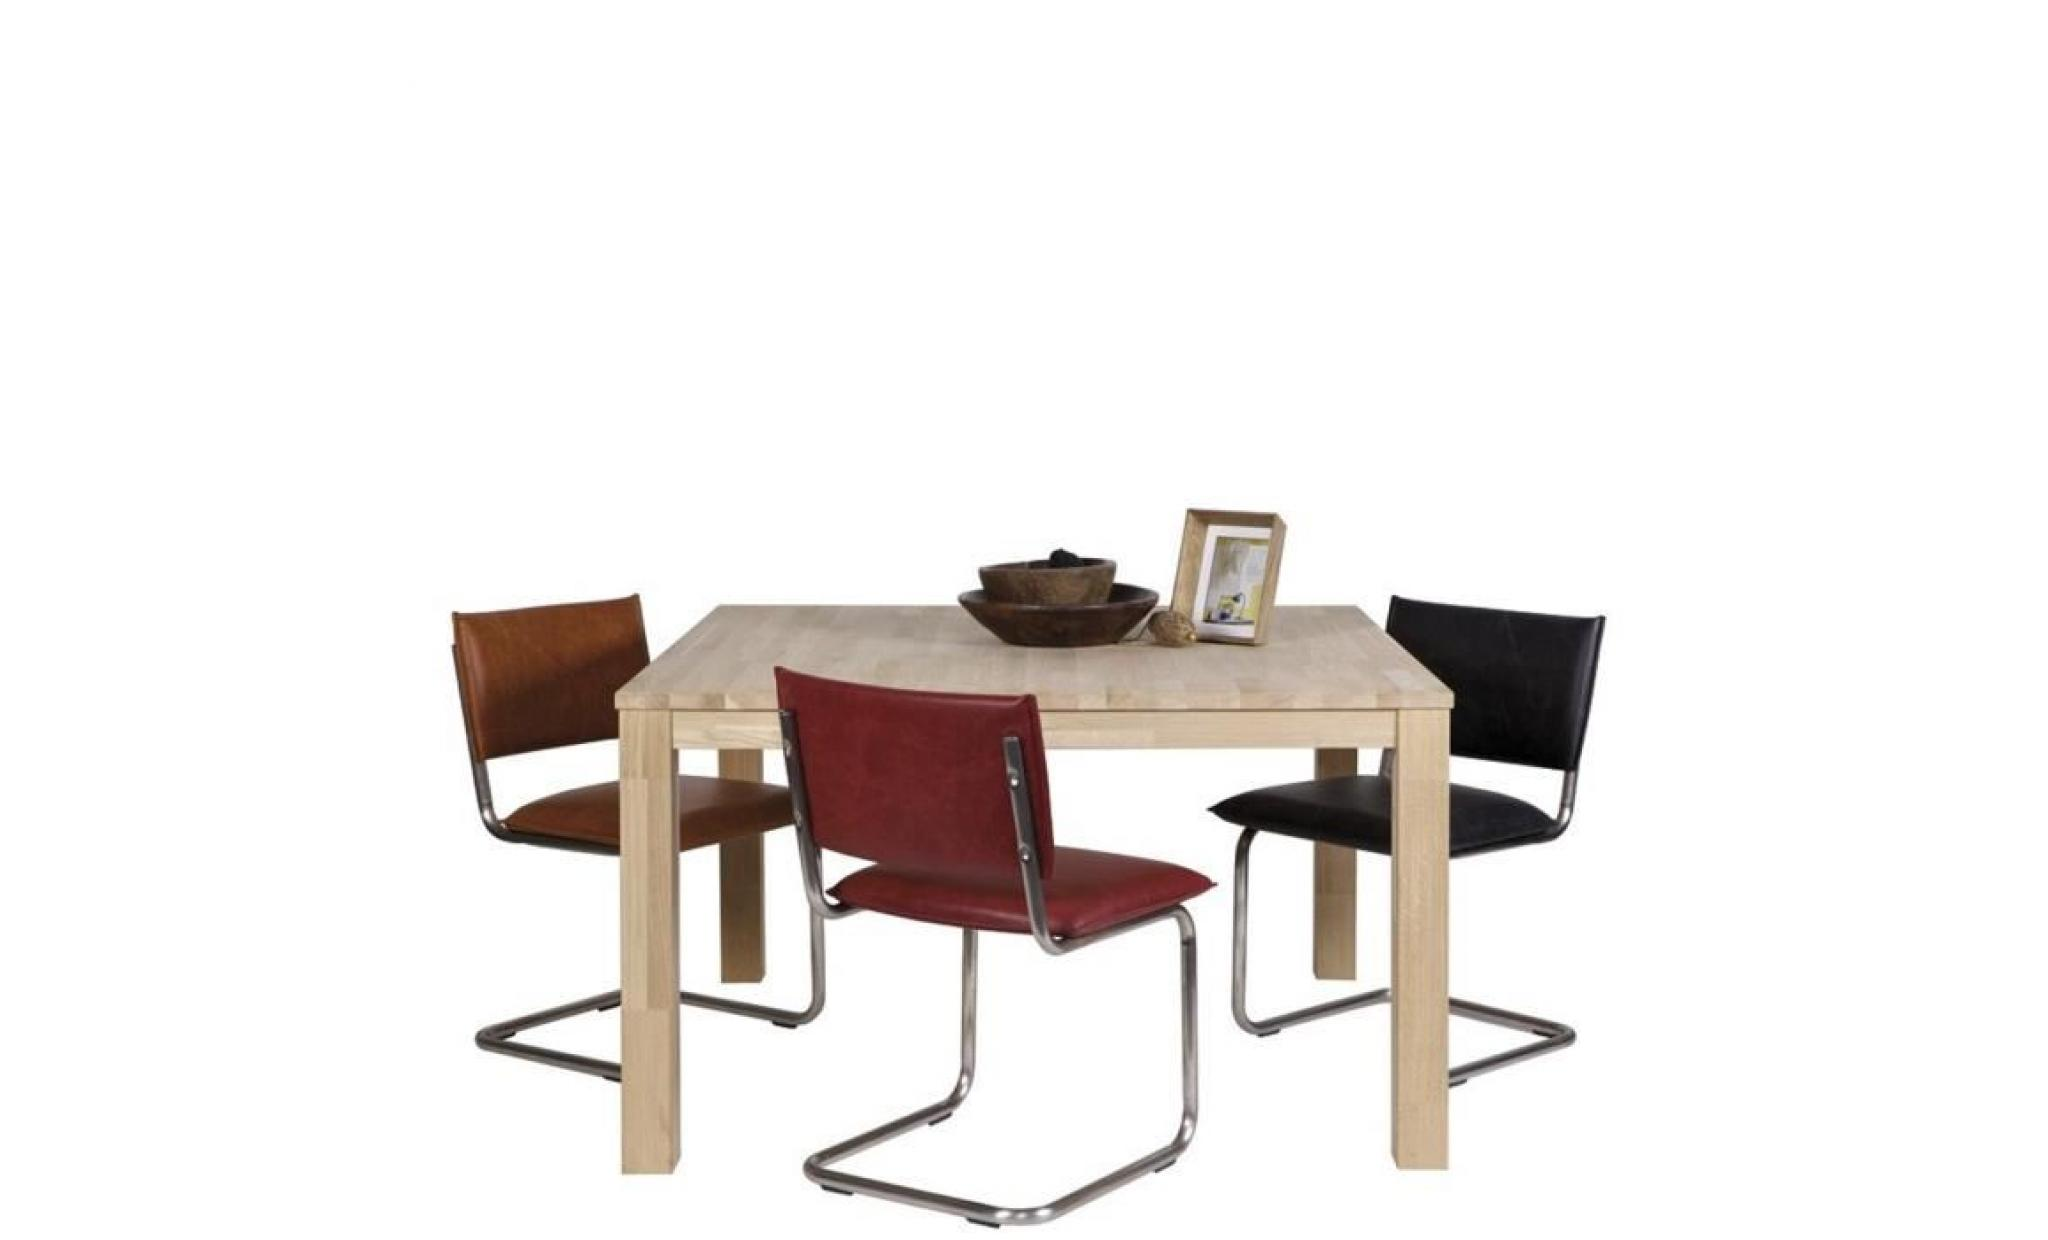 Table manger en ch ne massif brut dutchwood d achat - Table en chene massif pas cher ...